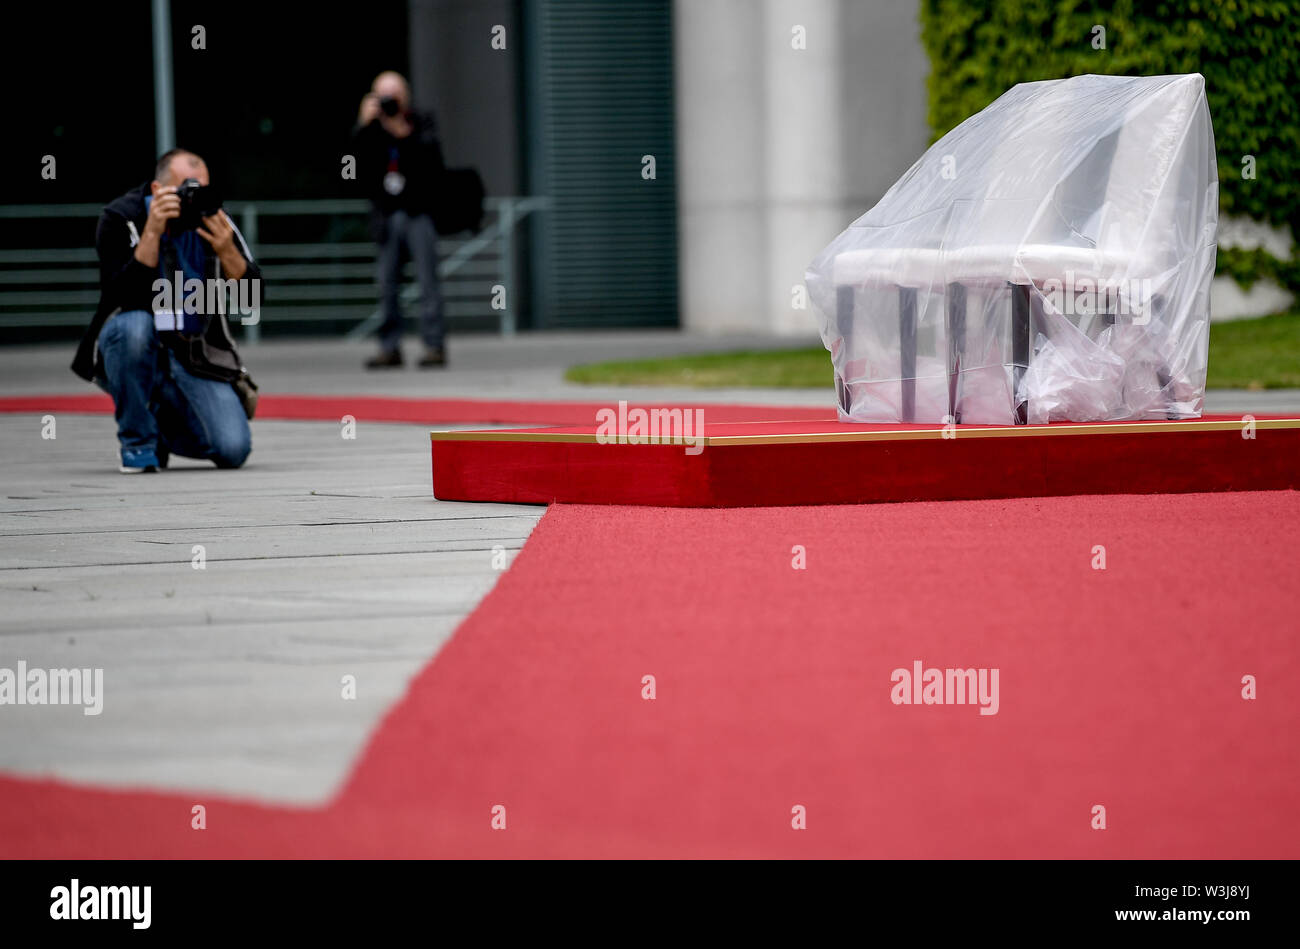 Berlin, Germany. 16th July, 2019. Chairs are available for the reception of Moldovan Prime Minister Sandu with military honours. For the second time in a row, Chancellor Angela Merkel (CDU) has welcomed a foreign guest, some of them sitting with military honors. After several tremors during public appearances such as this, Merkel performed the ceremony for the first time last week, partly sitting down. Credit: Britta Pedersen/dpa-Zentralbild/dpa/Alamy Live News - Stock Image